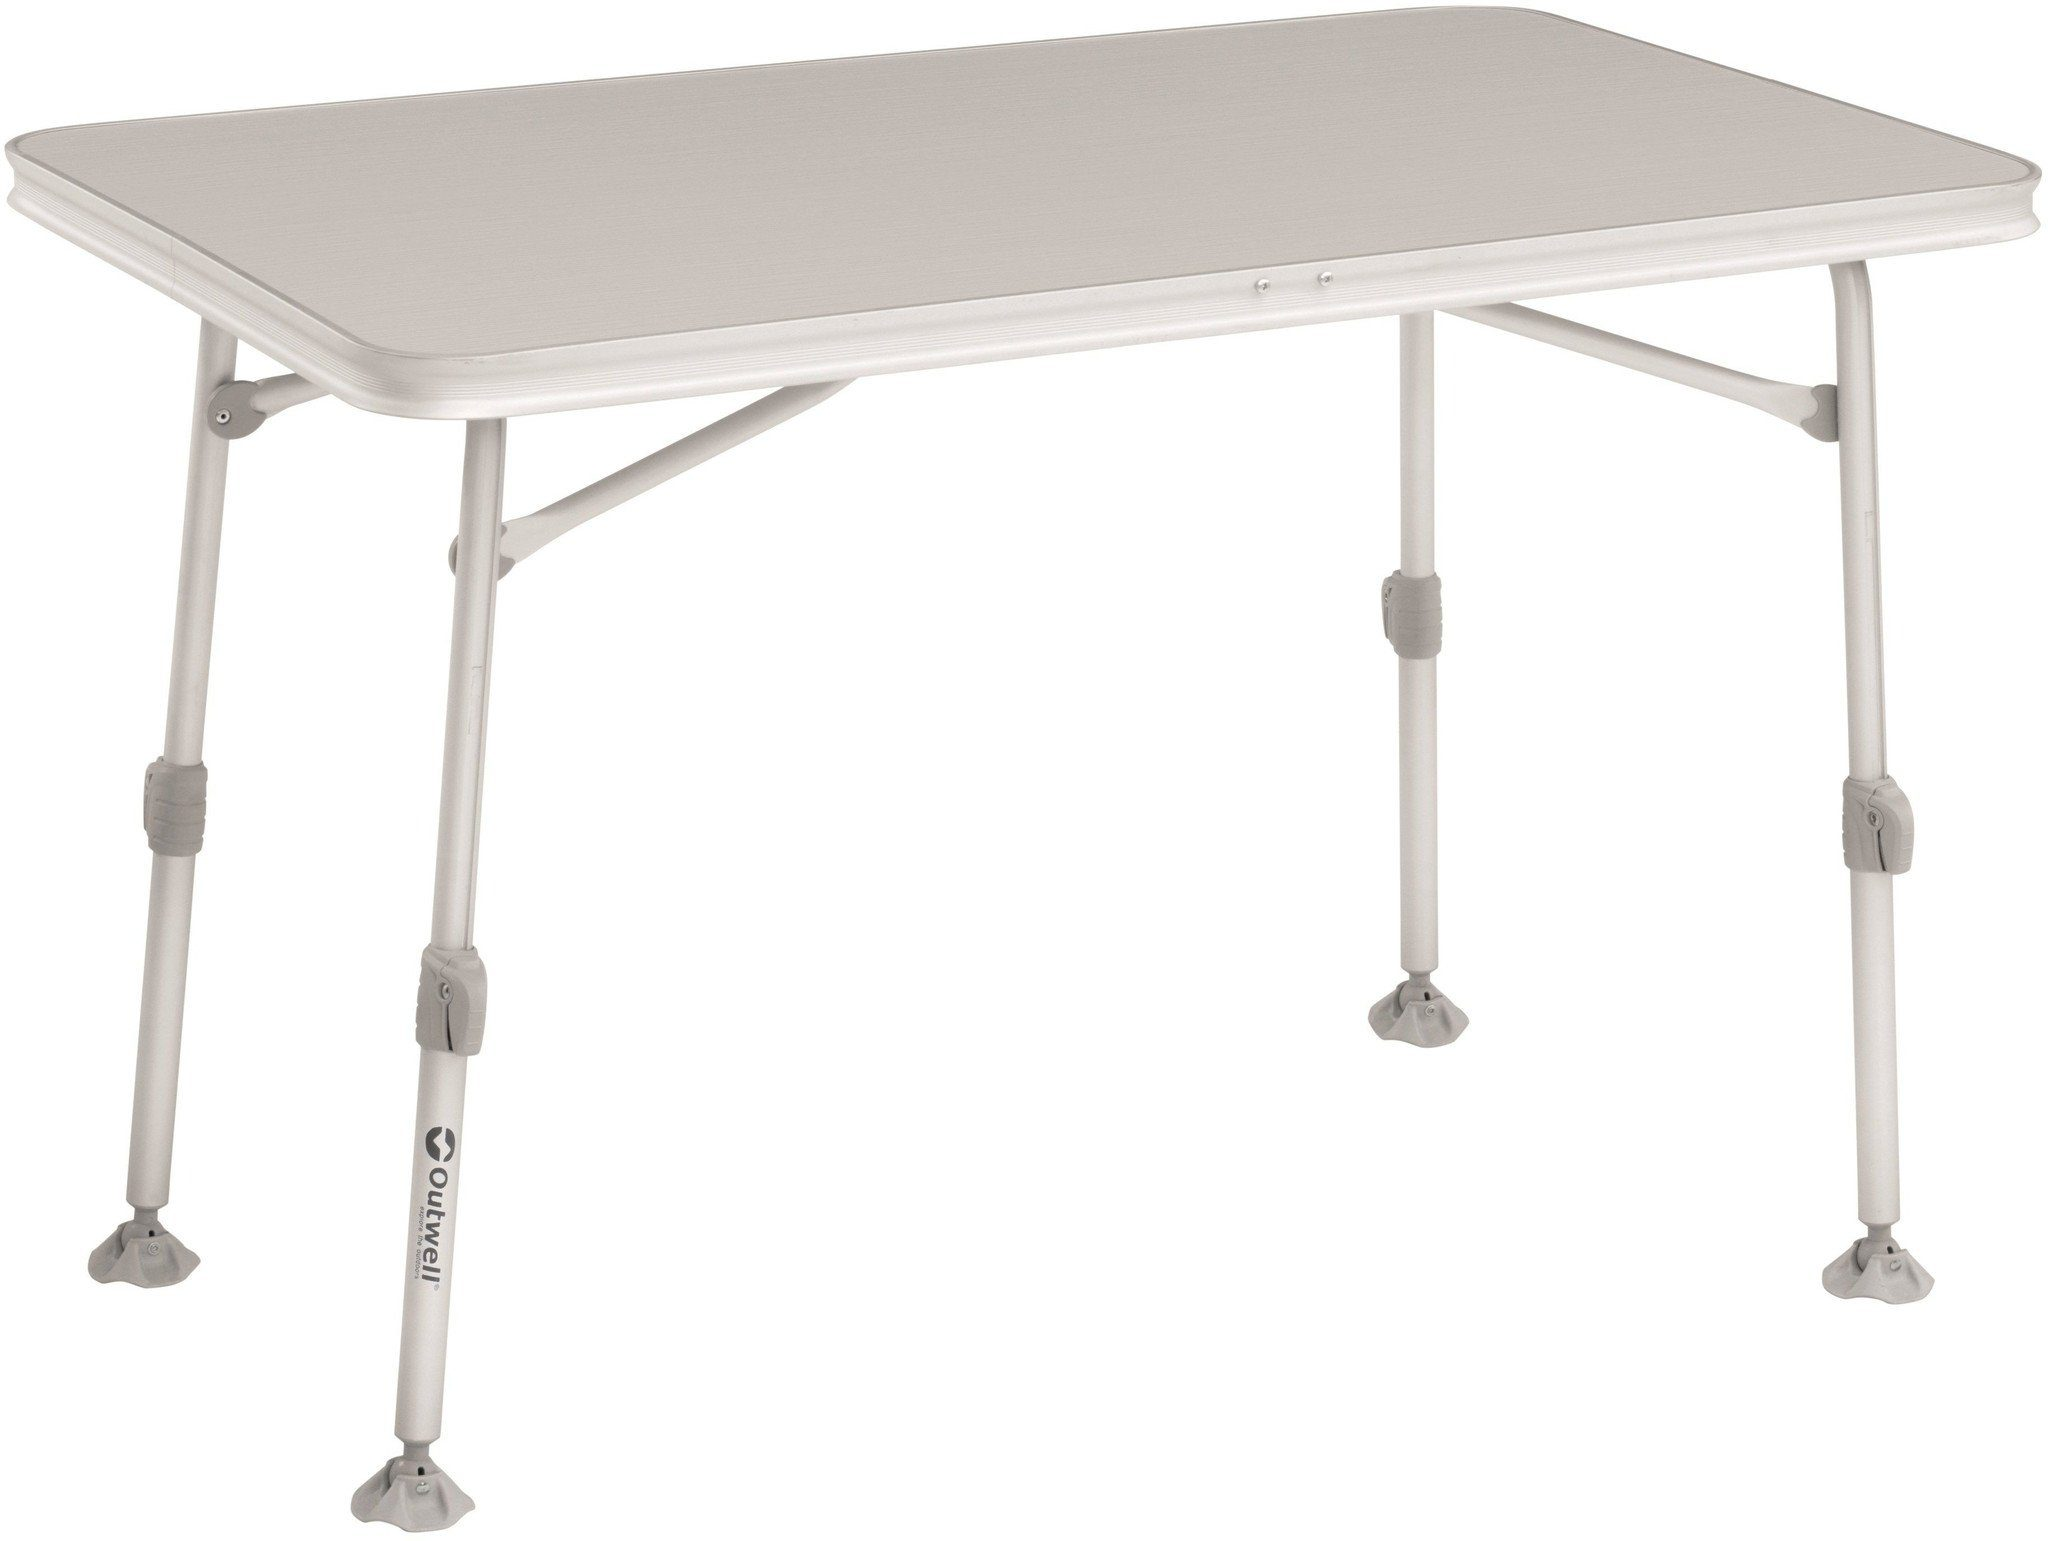 Outwell Camping Tisch »Roblin M Table«